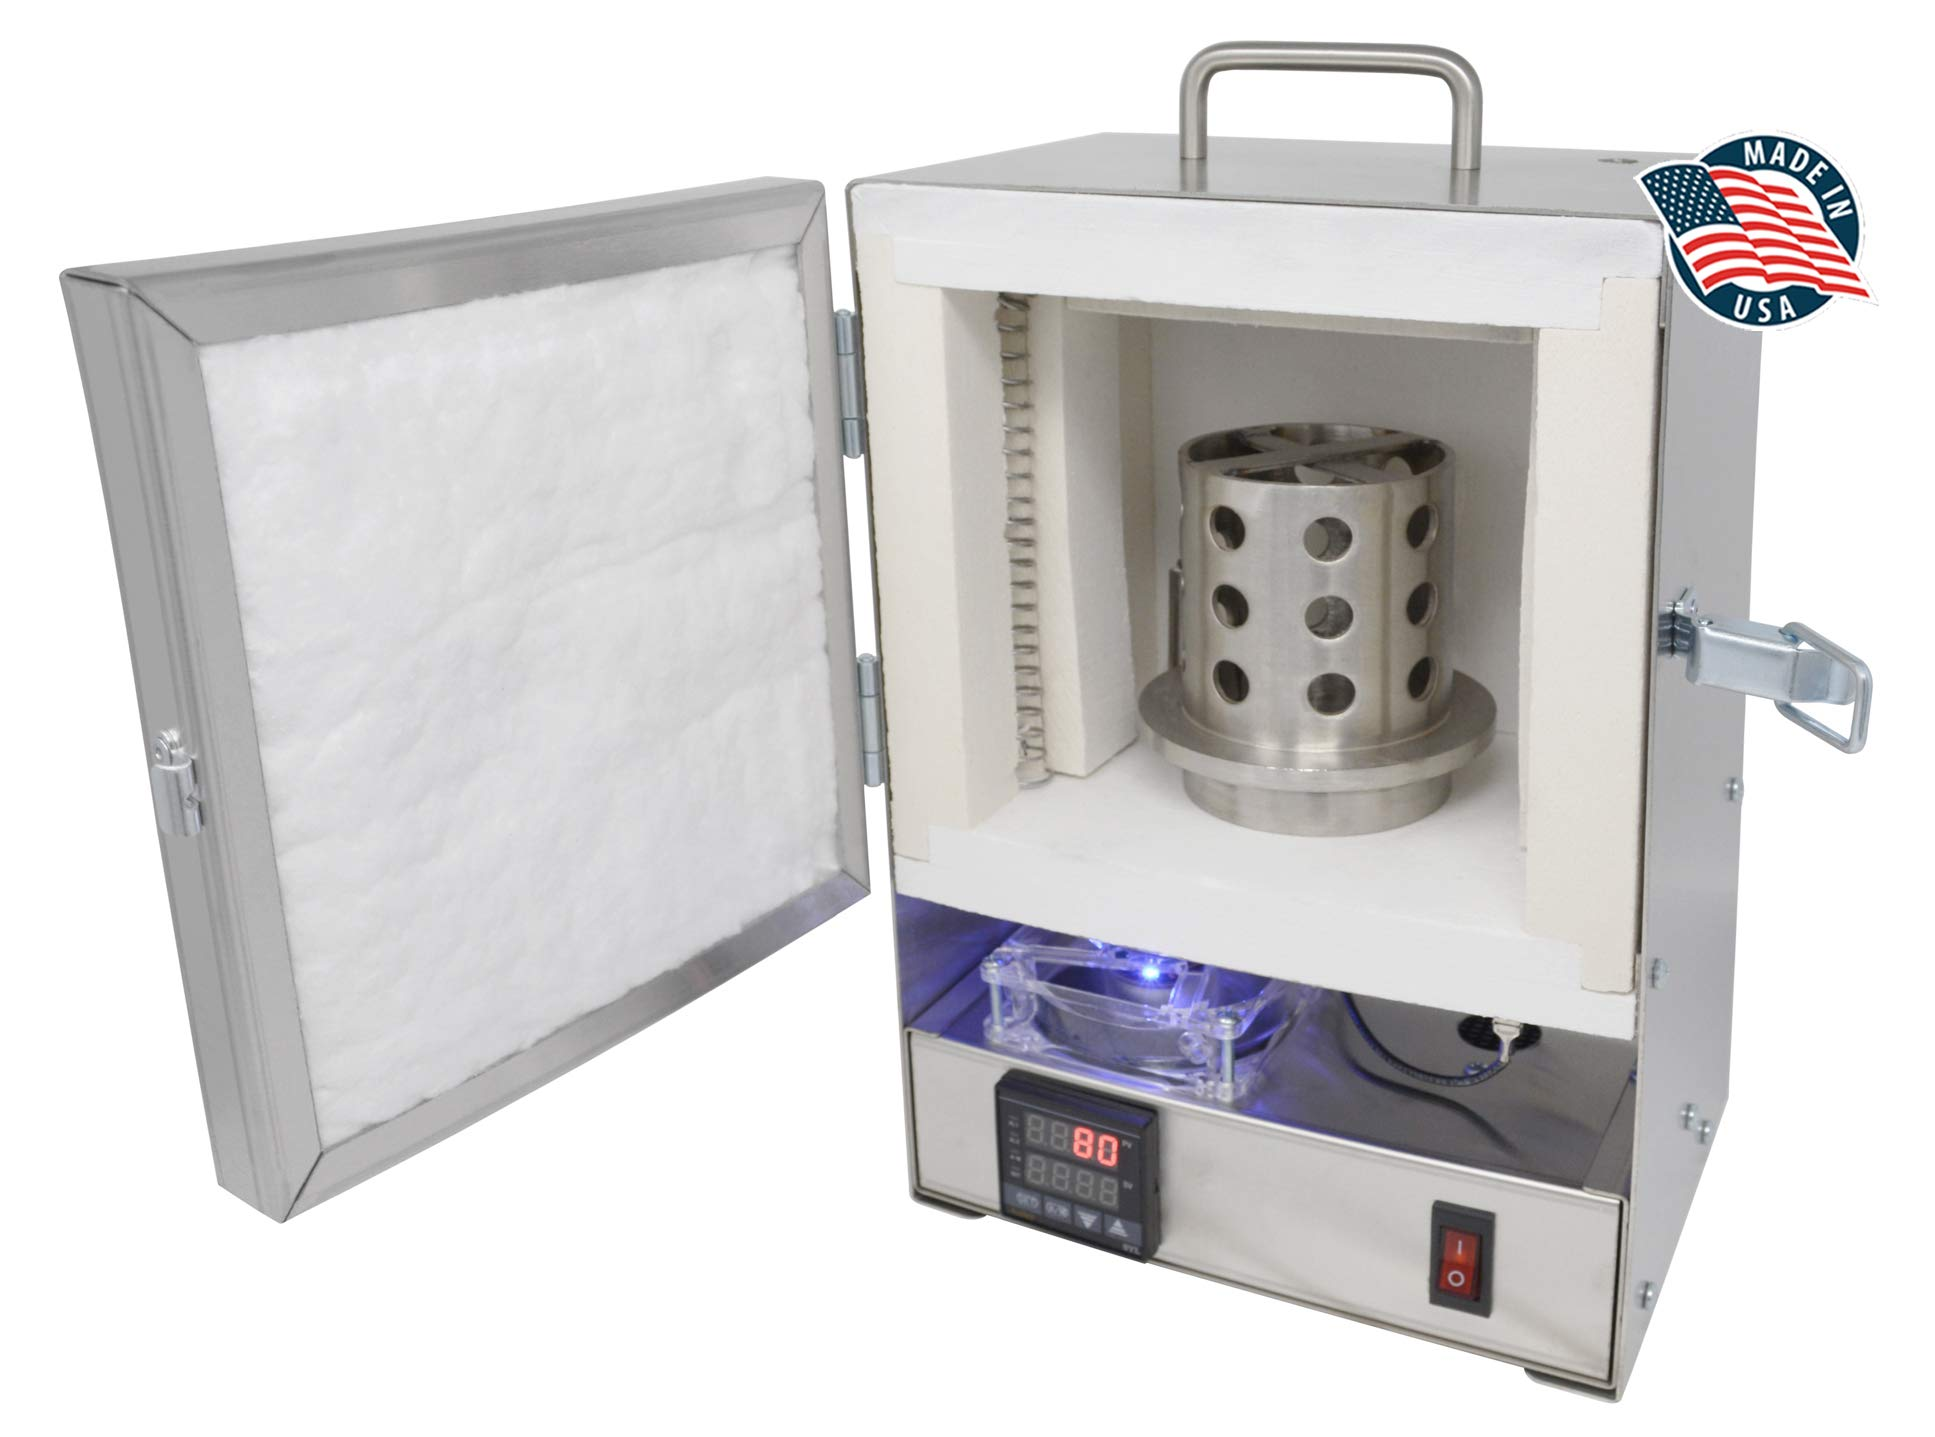 Tabletop Hi-Temp 2200 Degree Electric Burnout Oven Kiln Vent Hole PROGRAMMABLE Controller Furnace Jewelry Making Dental Cast Wax 3D Resin PLA Burnout Made in The U.S.A.